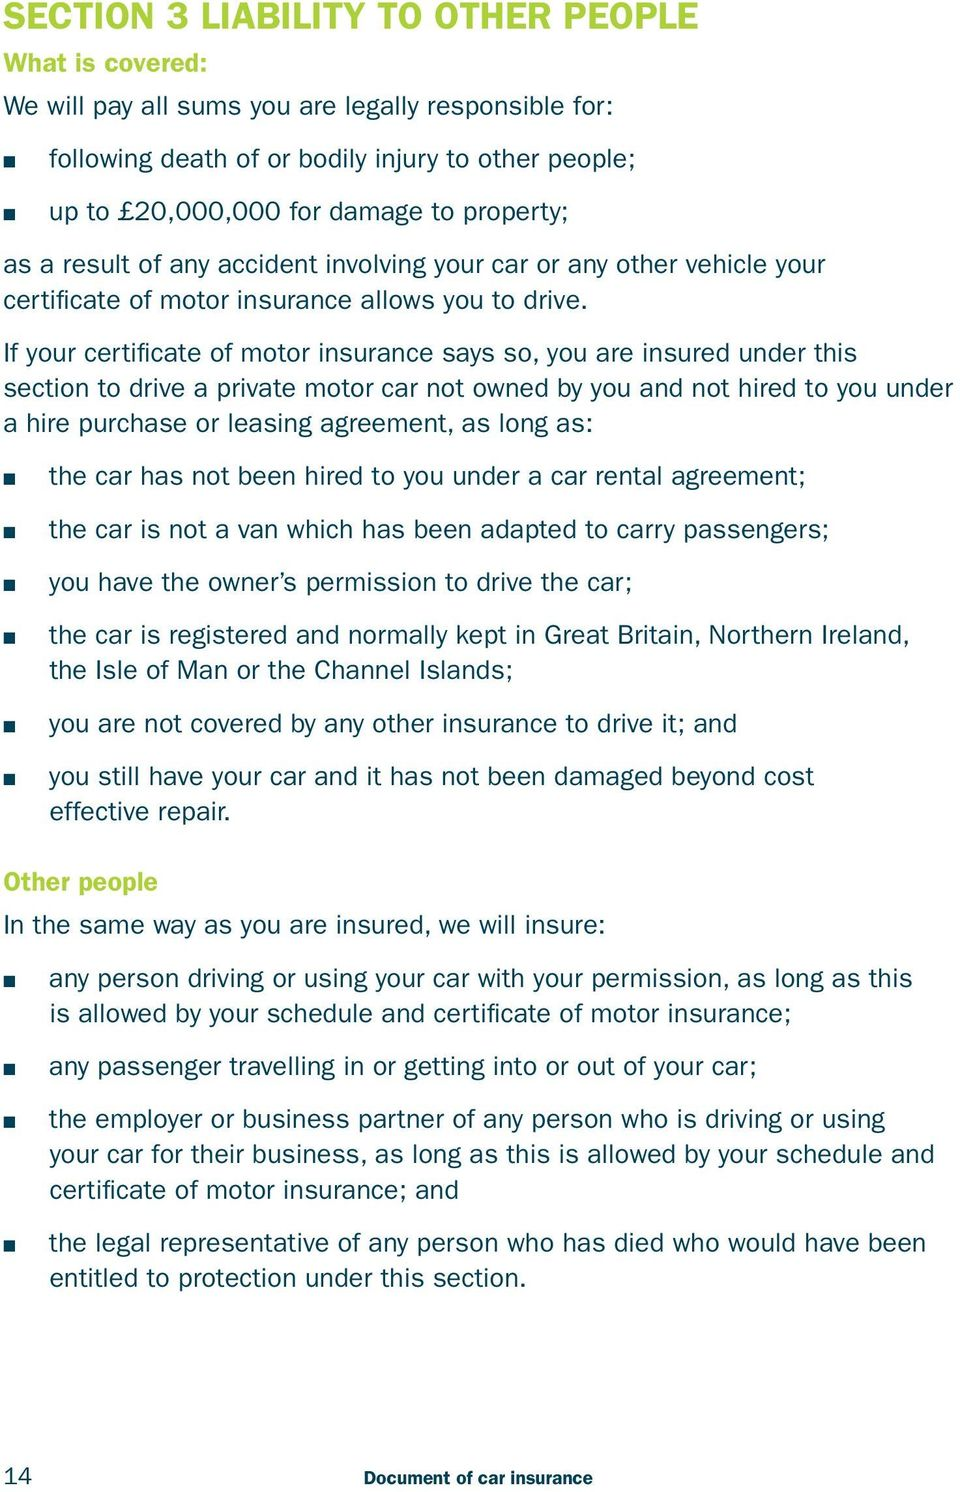 If your certificate of motor insurance says so, you are insured under this section to drive a private motor car not owned by you and not hired to you under a hire purchase or leasing agreement, as